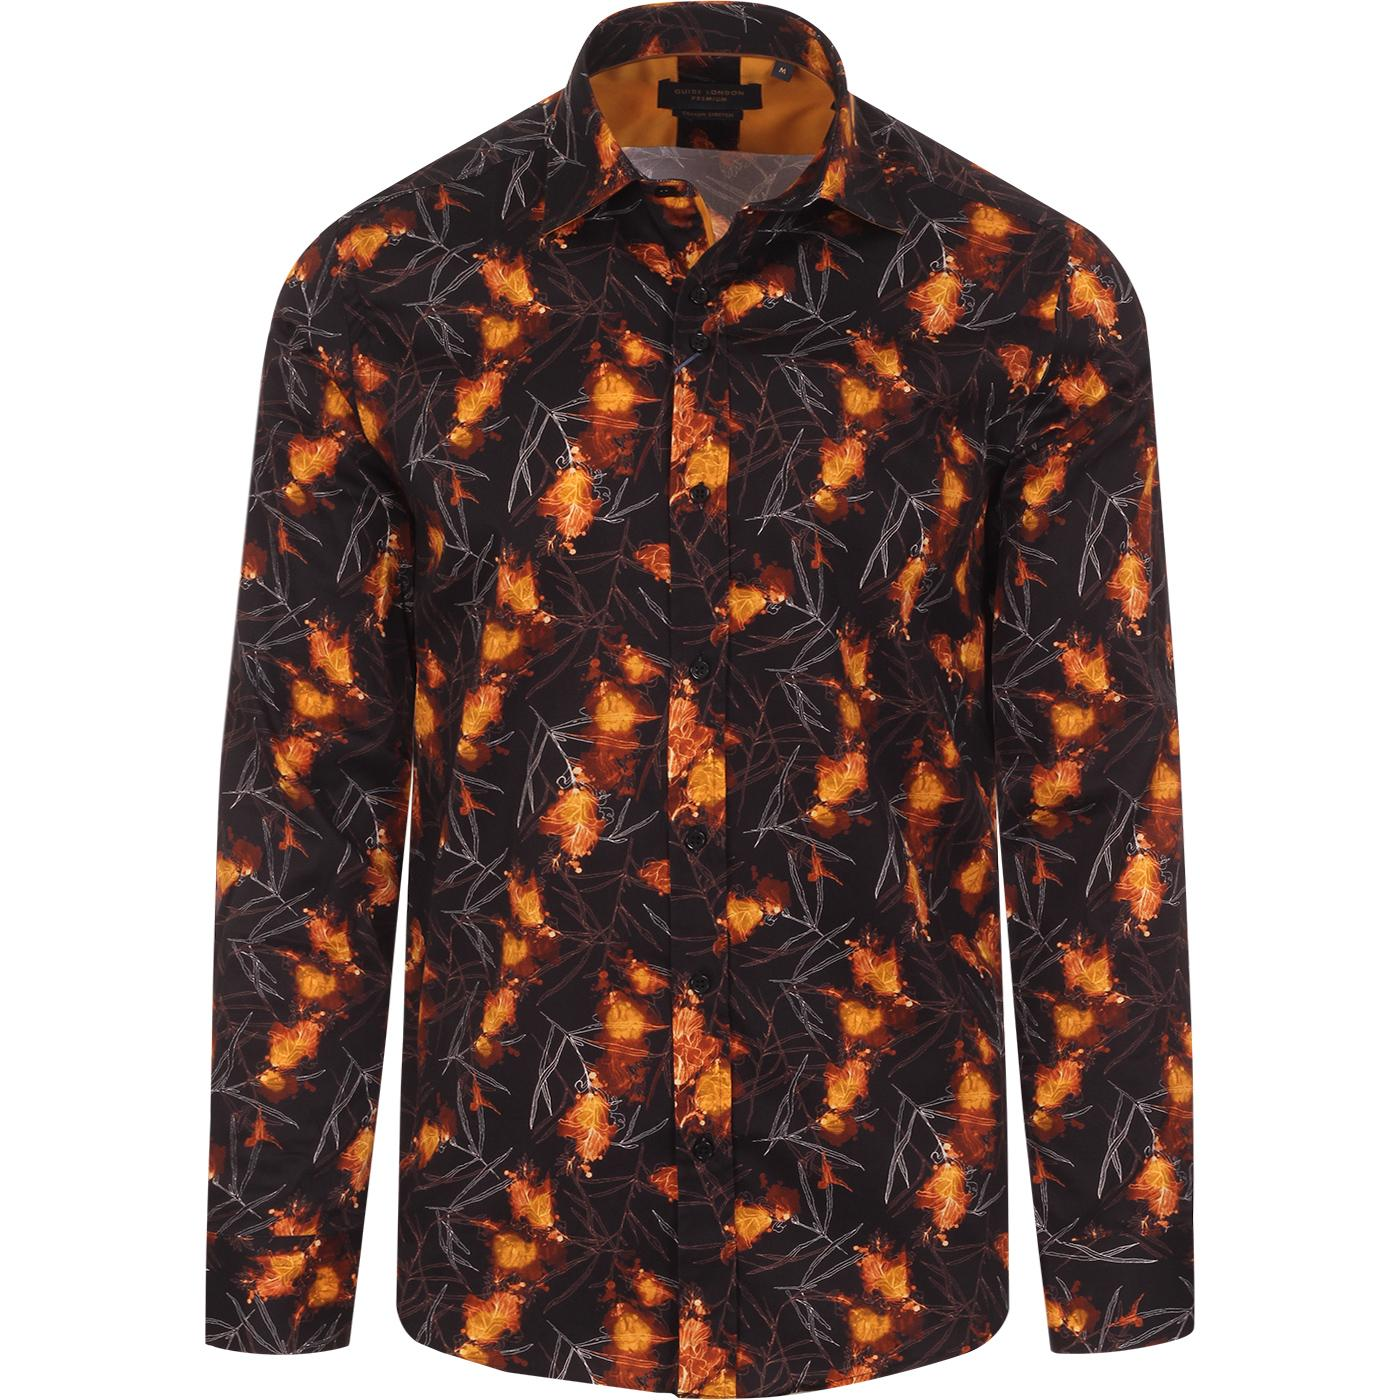 Flaming Flowers GUIDE LONDON 60s Mod Shirt (Black)